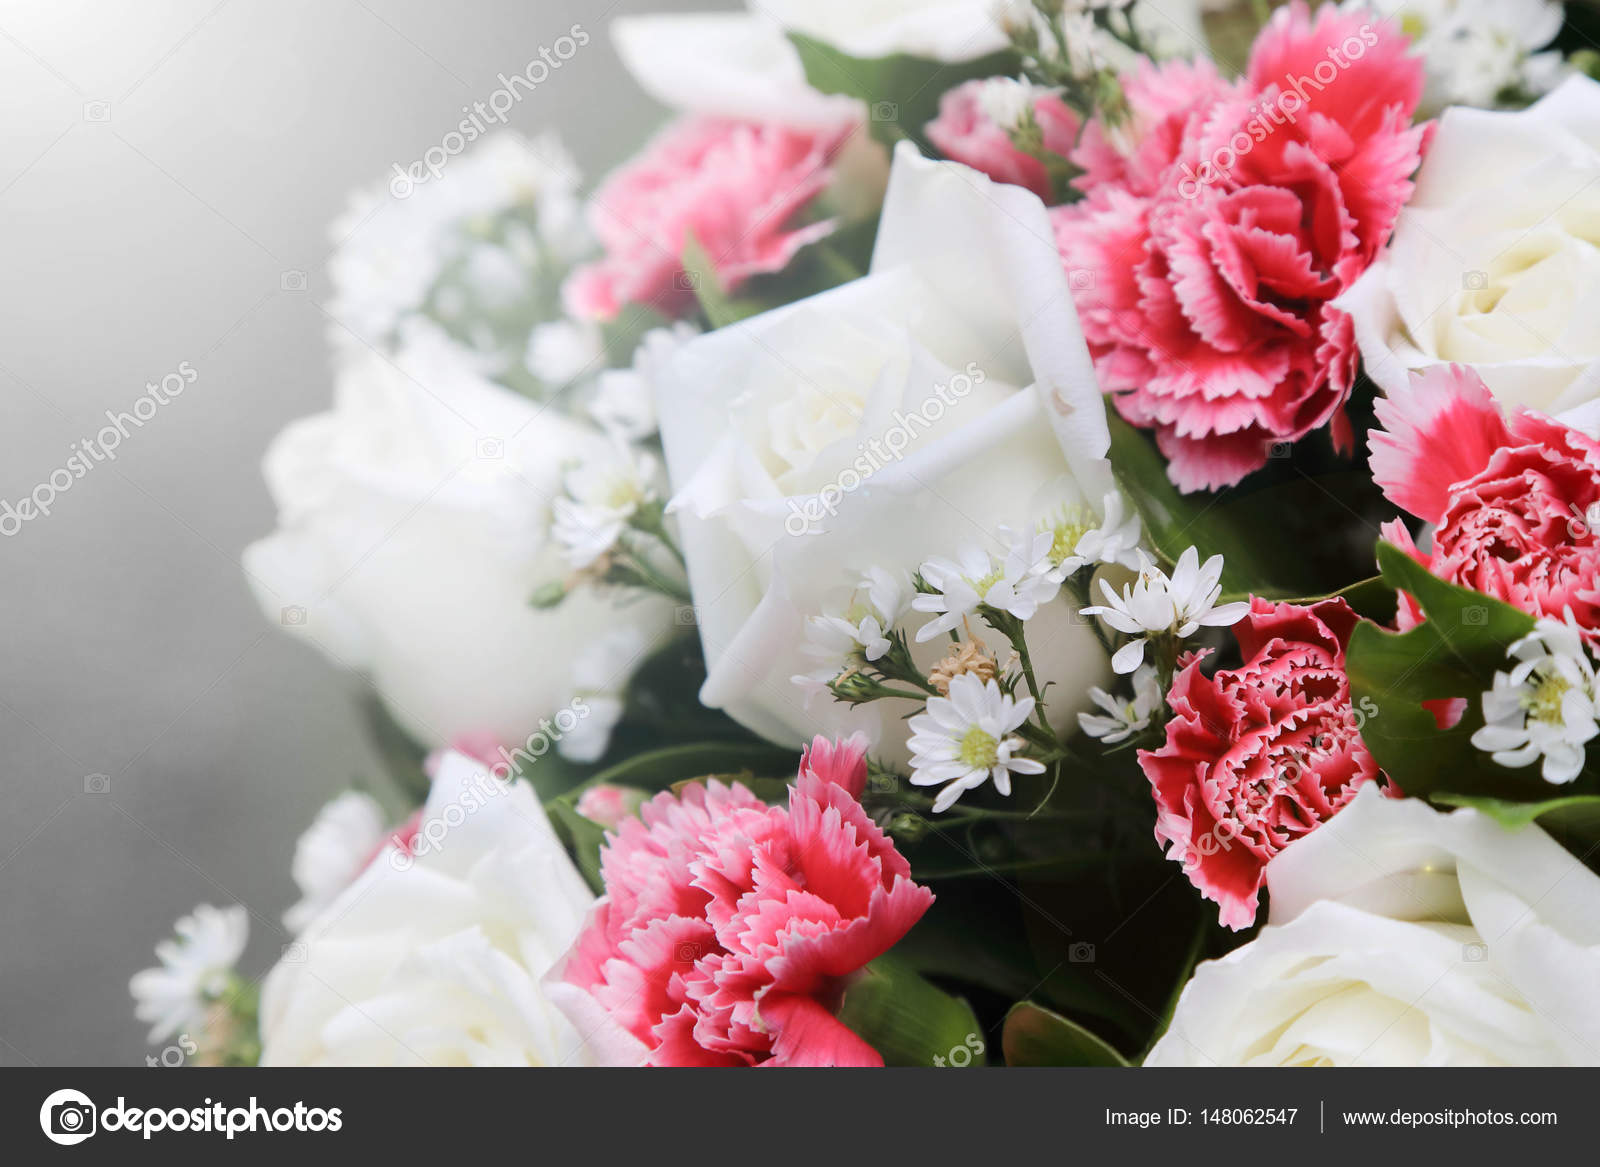 White rose flower bouquets stock photo charnsitr 148062547 background of white rose flower bouquets photo by charnsitr izmirmasajfo